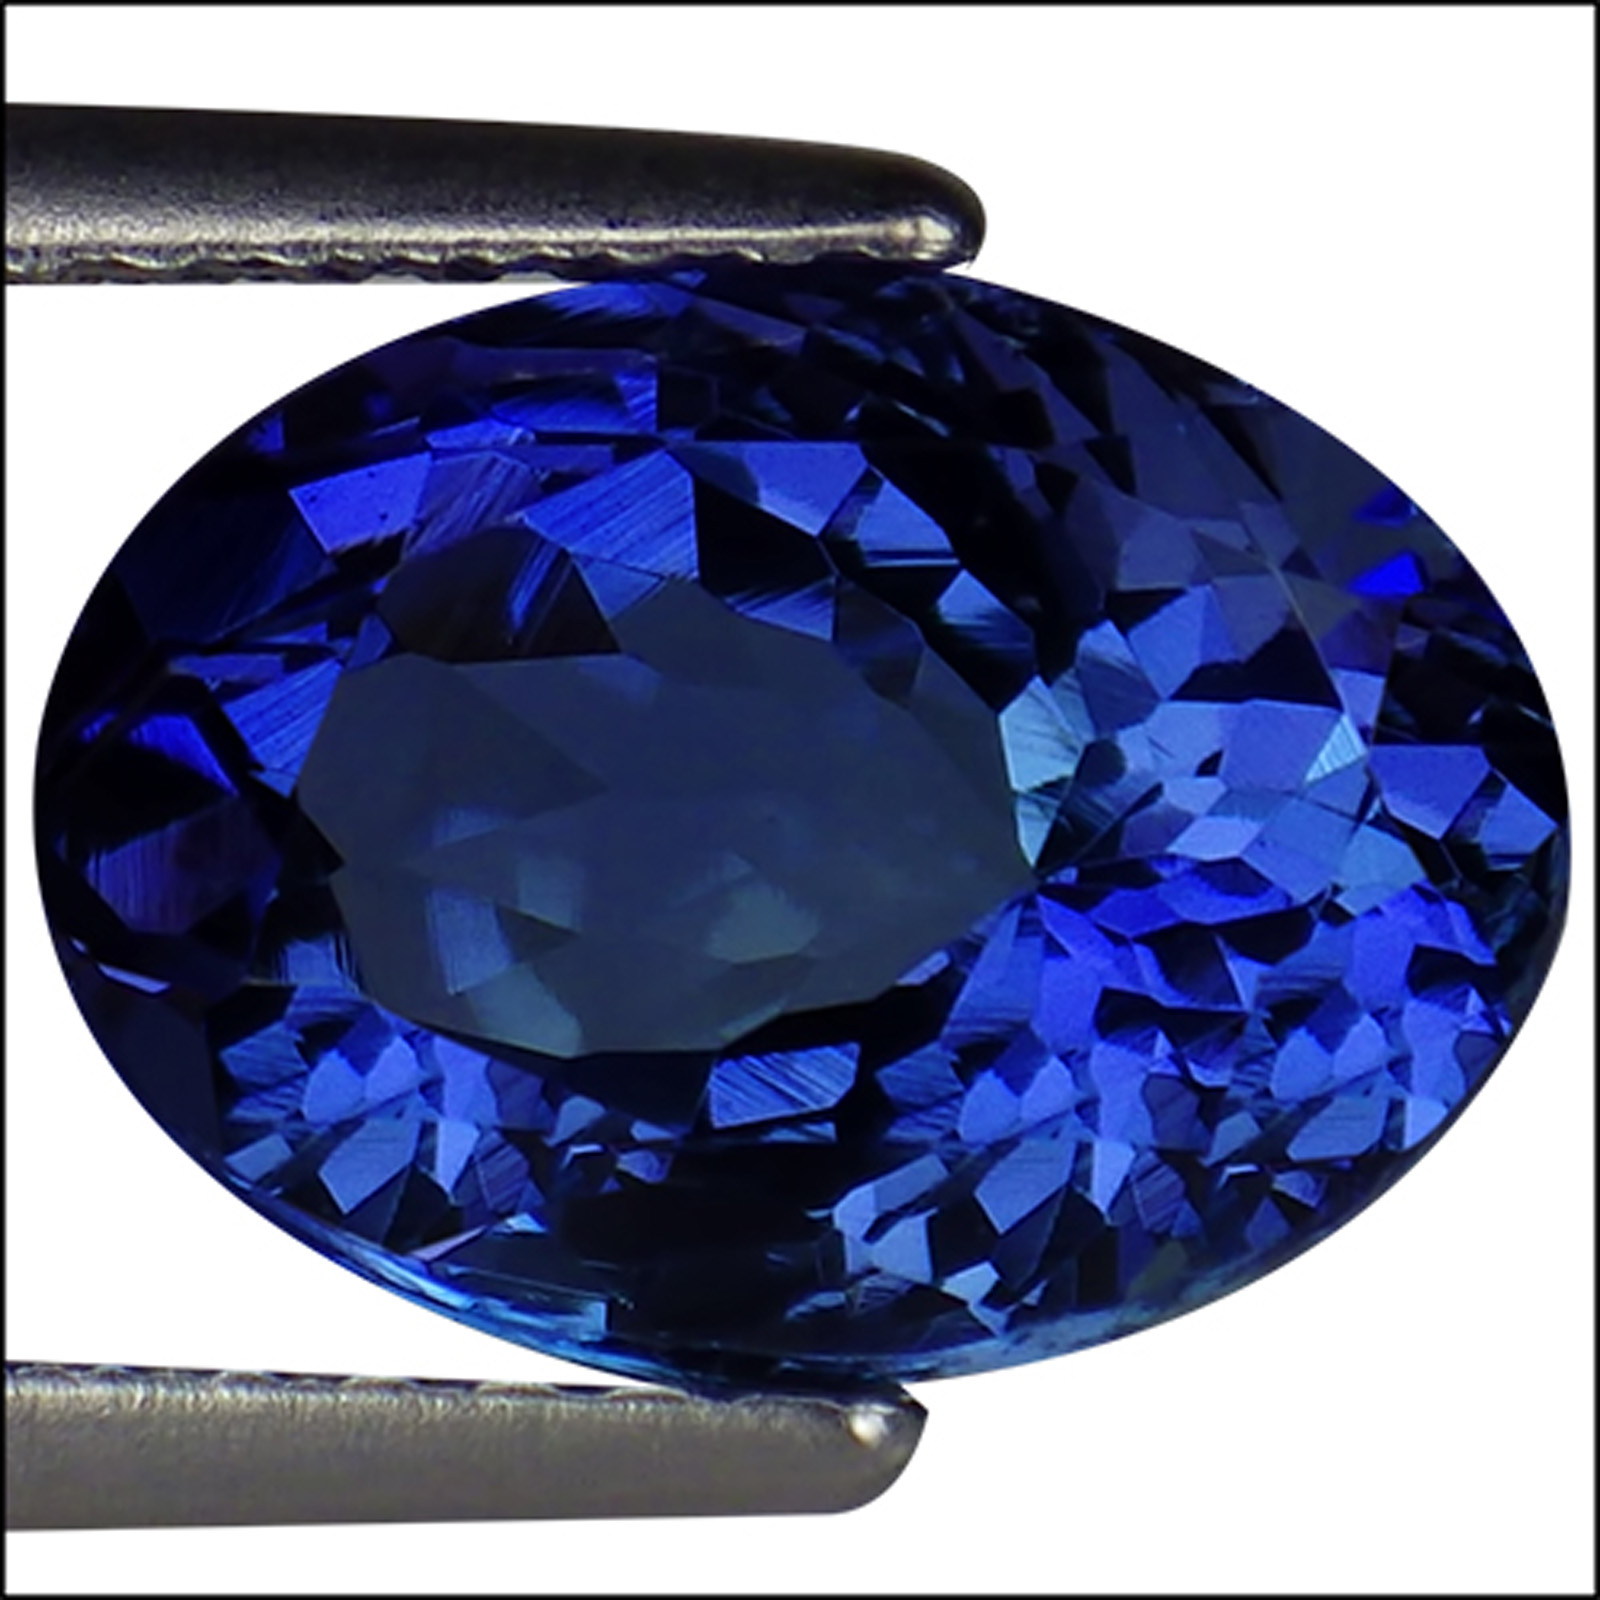 jewelry ring affair more loose bridal tanzanite rare grade d investment aaa cornflower natural pendant cut blue certified and natura necklace engagement triangle products my block cts for trillion